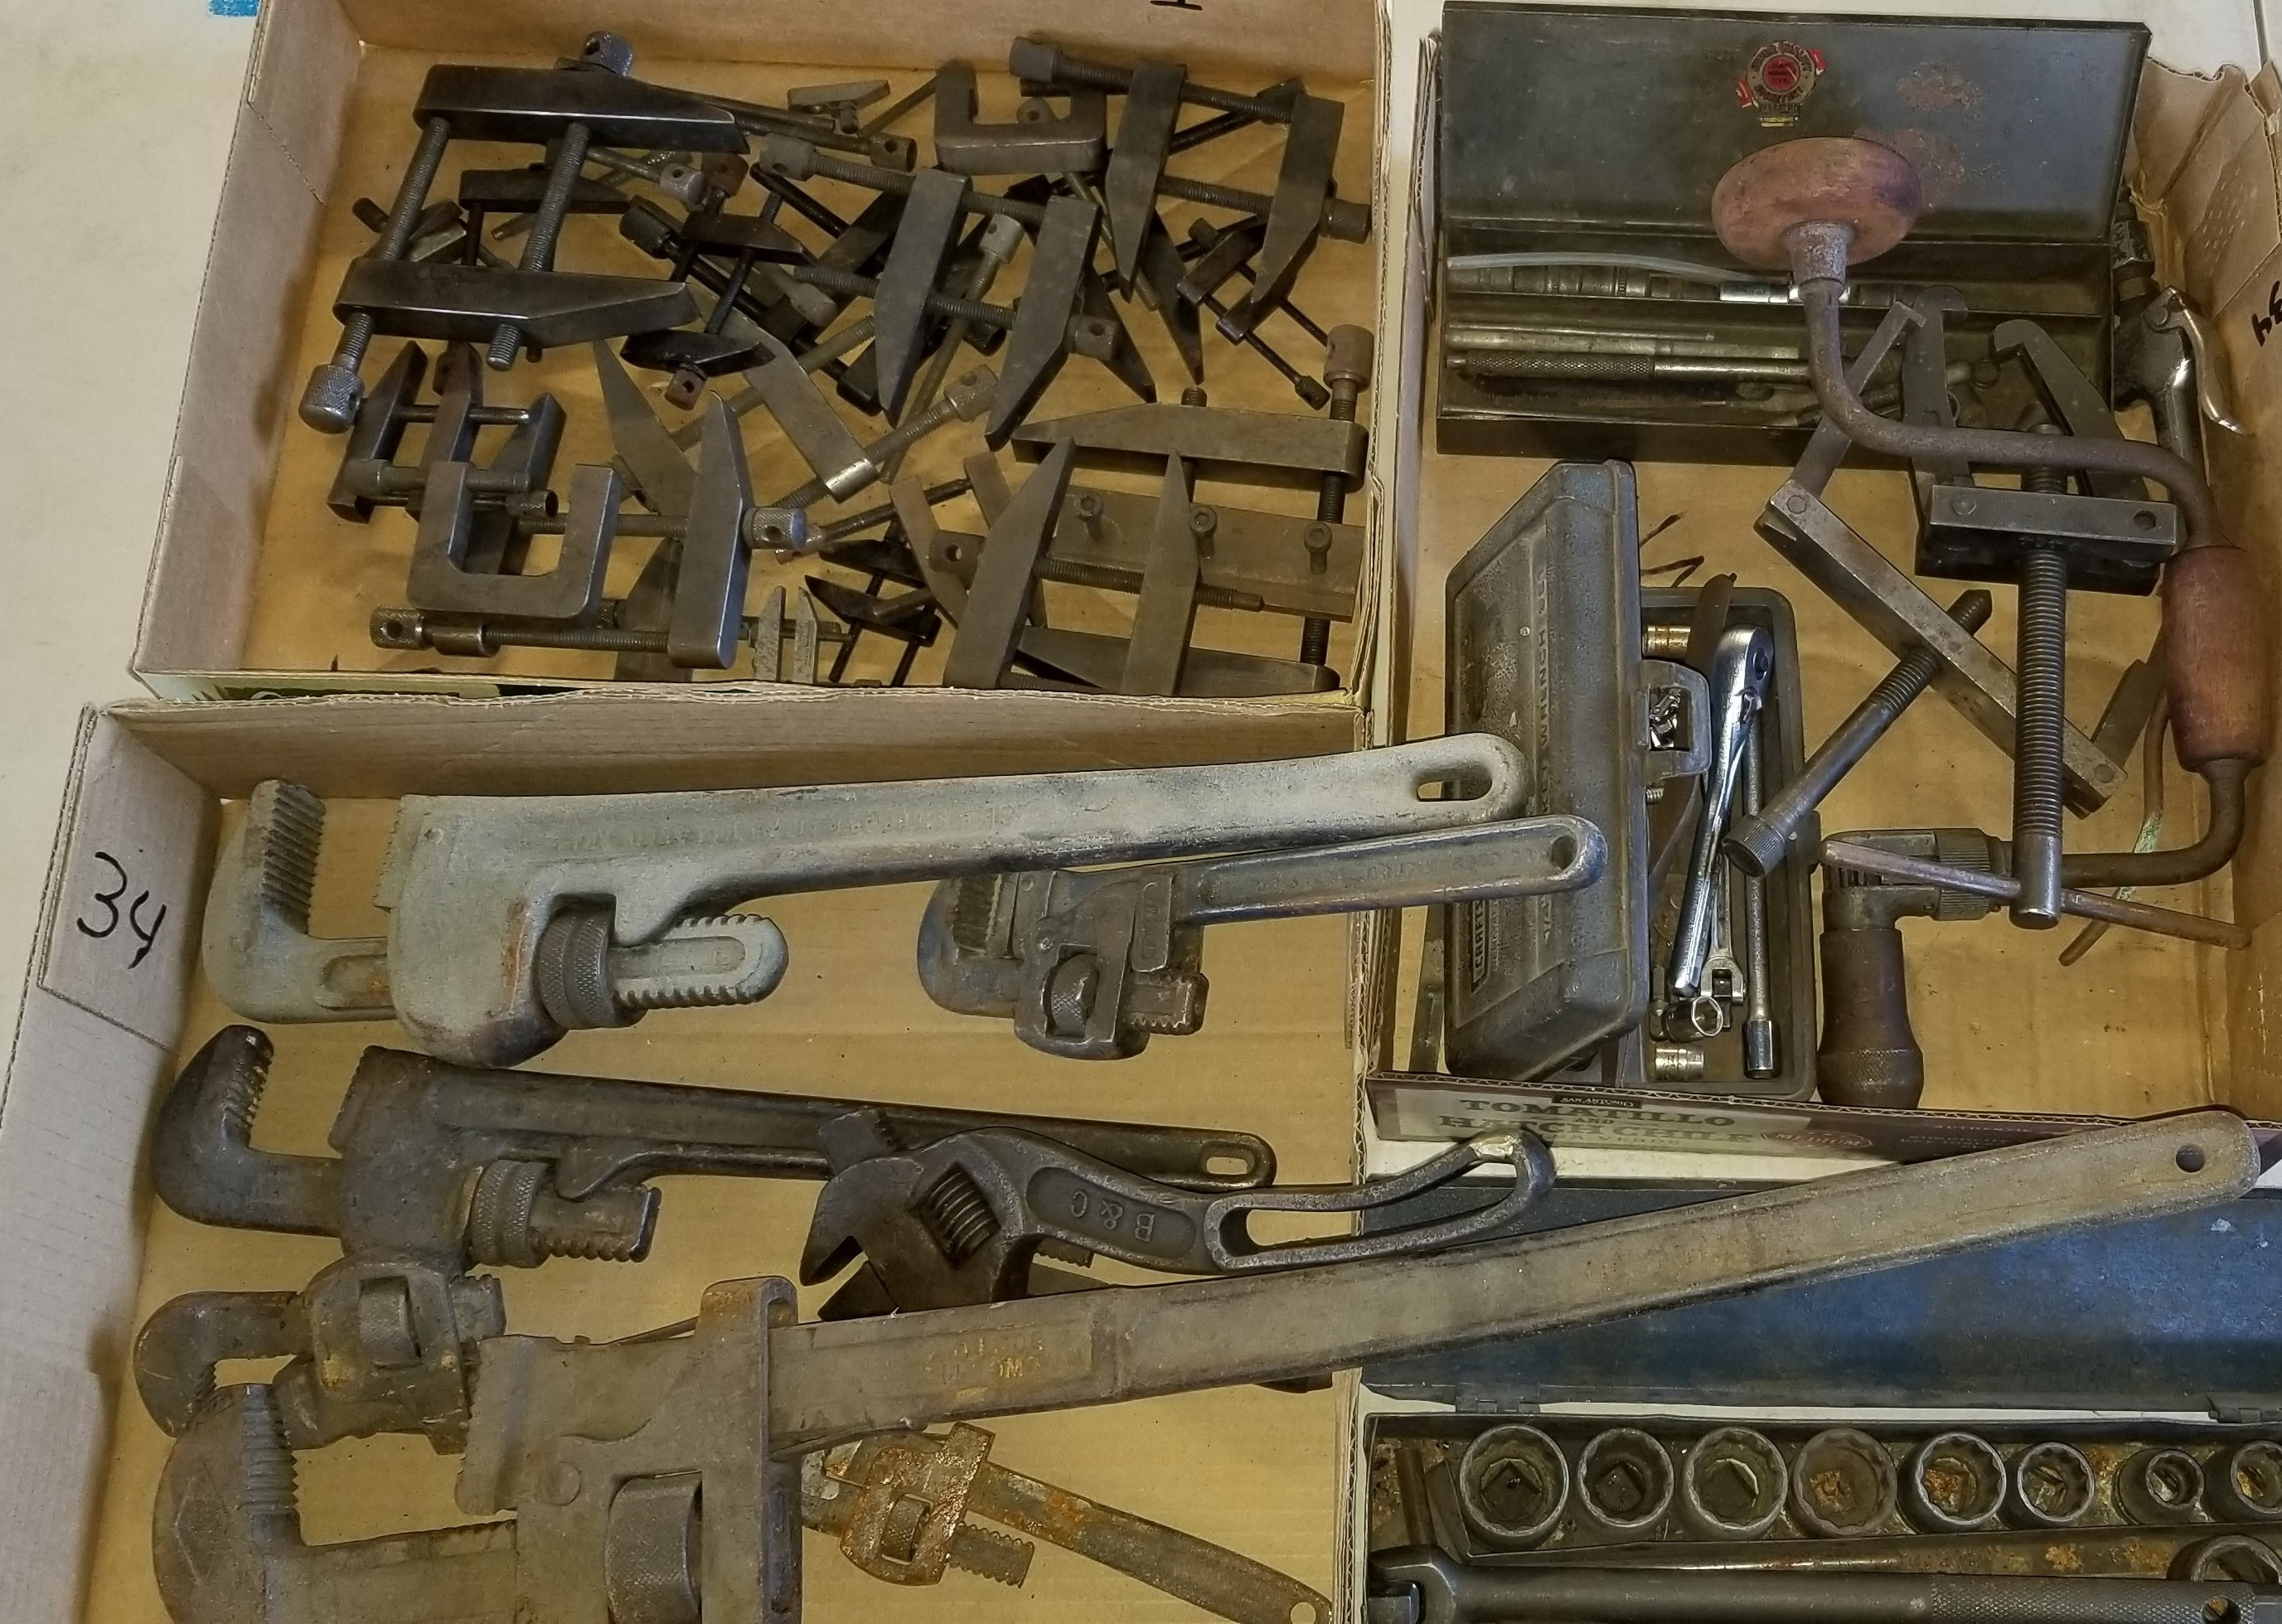 Lot 34 - Group Lot of Pipe Wrenches, Metal Clamps, Socket Wrenches and Assorted Tools